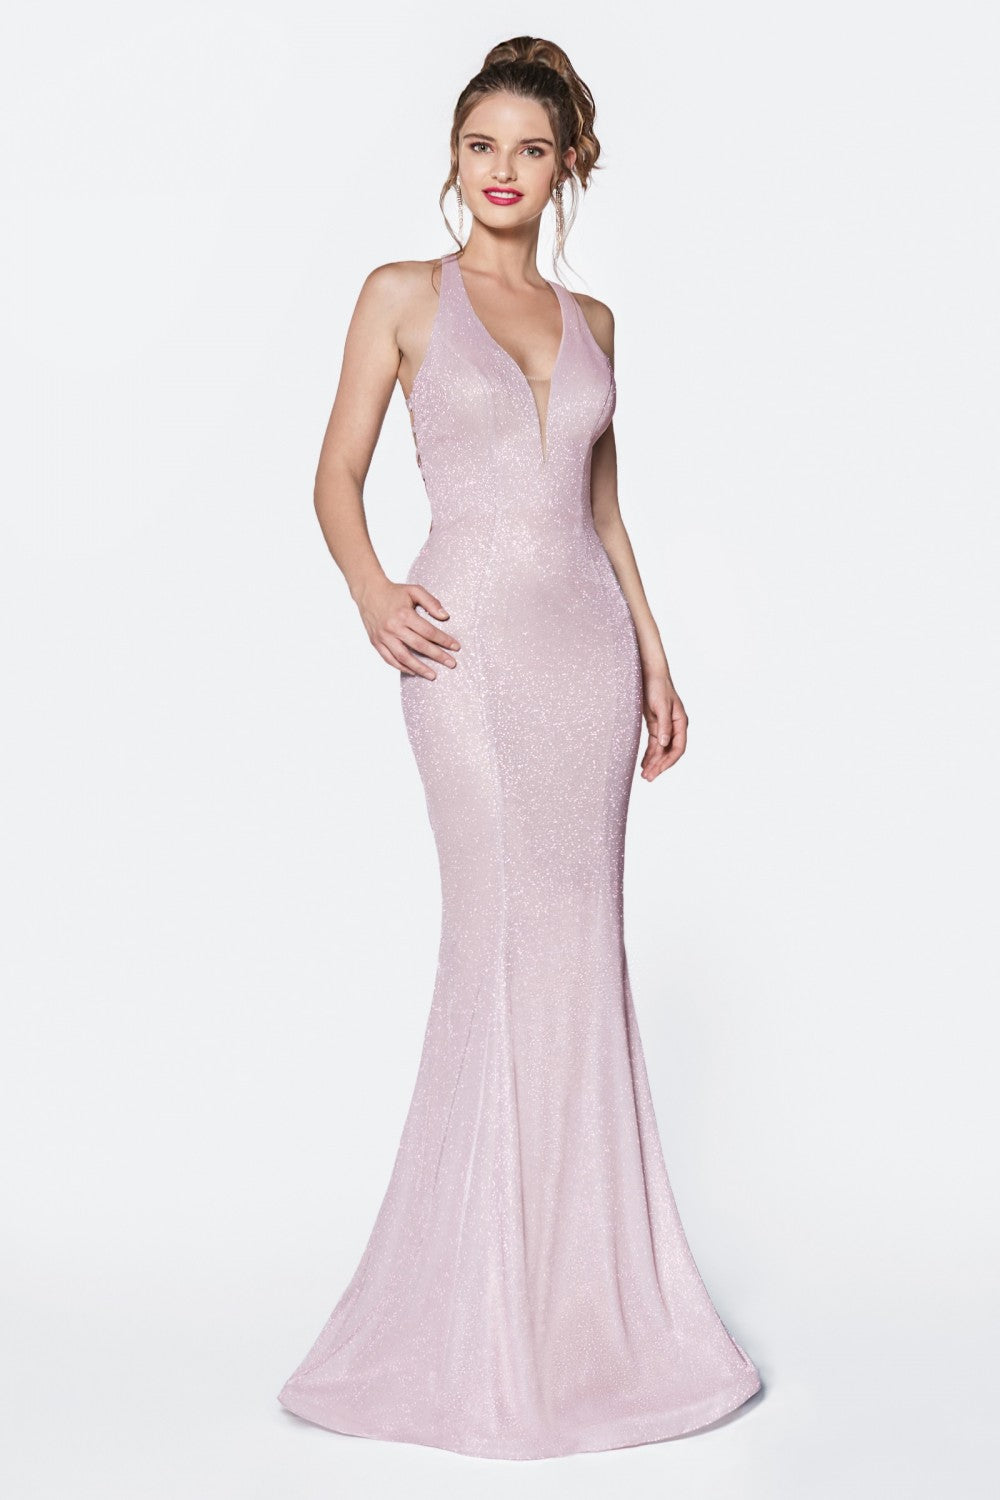 Fitted Glittered Gown With Deep Plunge Neckline And Criss Cross Back